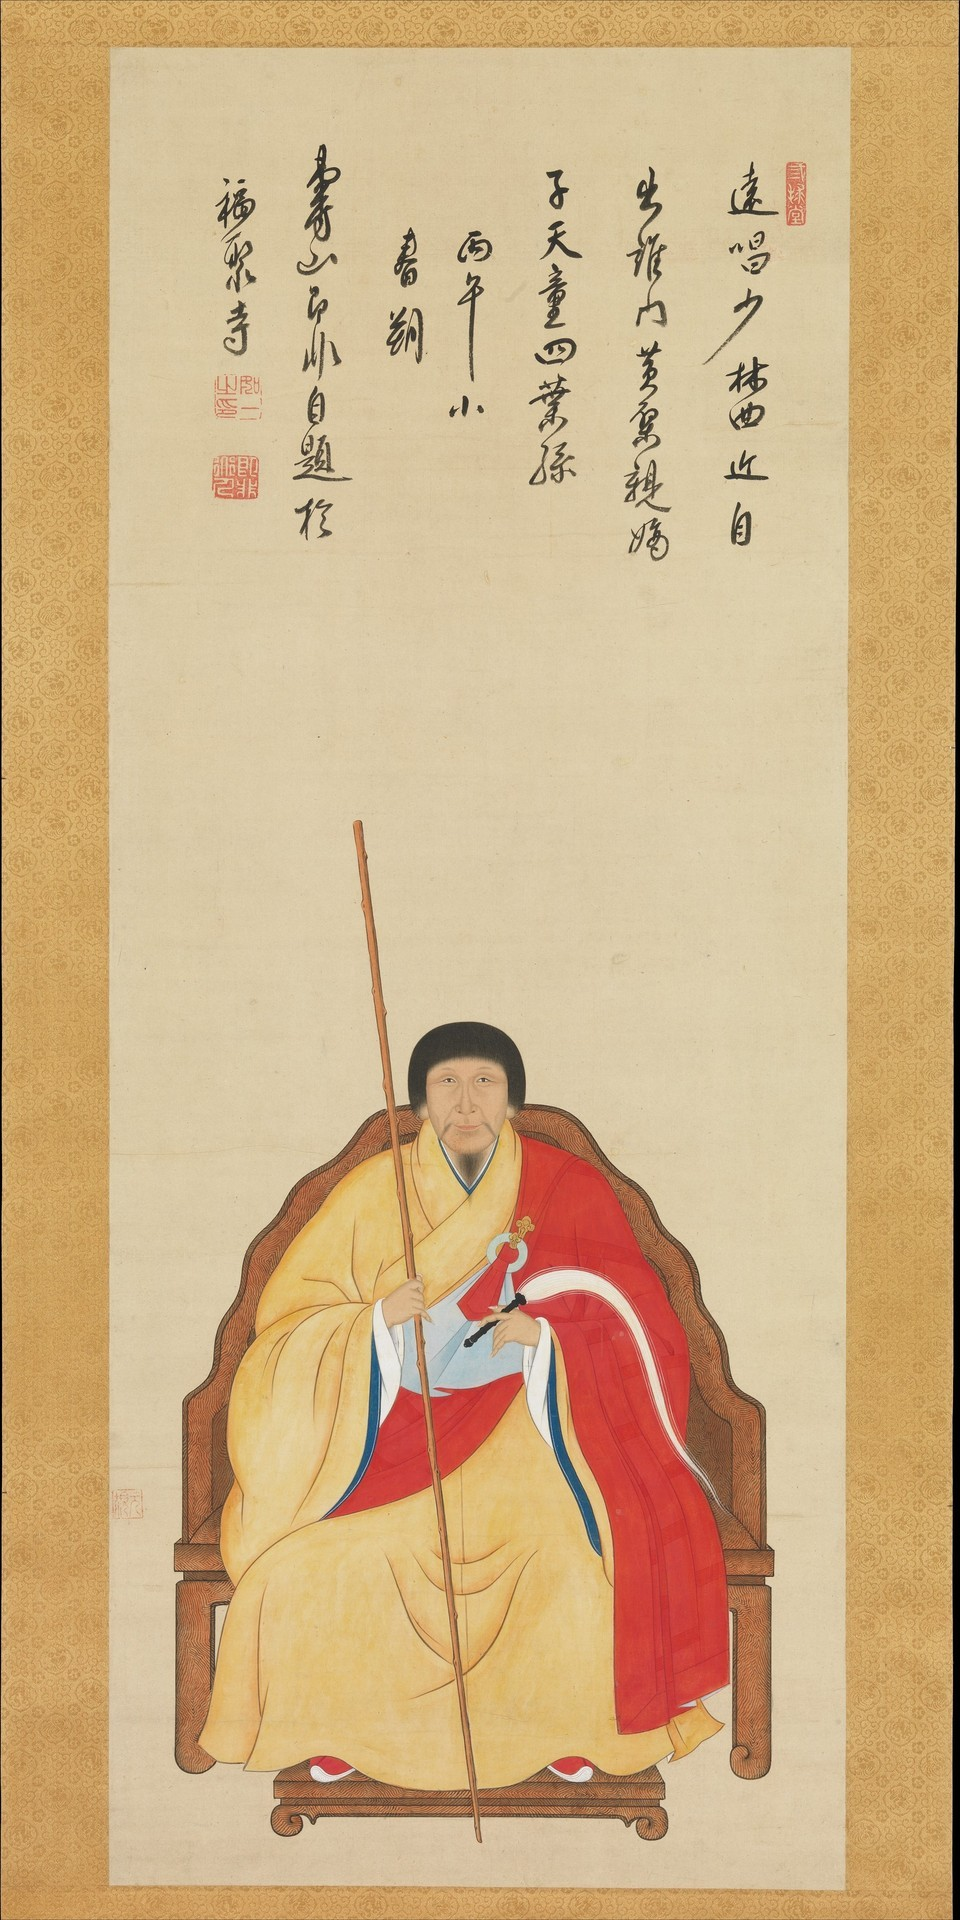 Nyoichi - Portrait of Jifei Ruyi, 1966. Hanging scroll: Ink and colour on silk